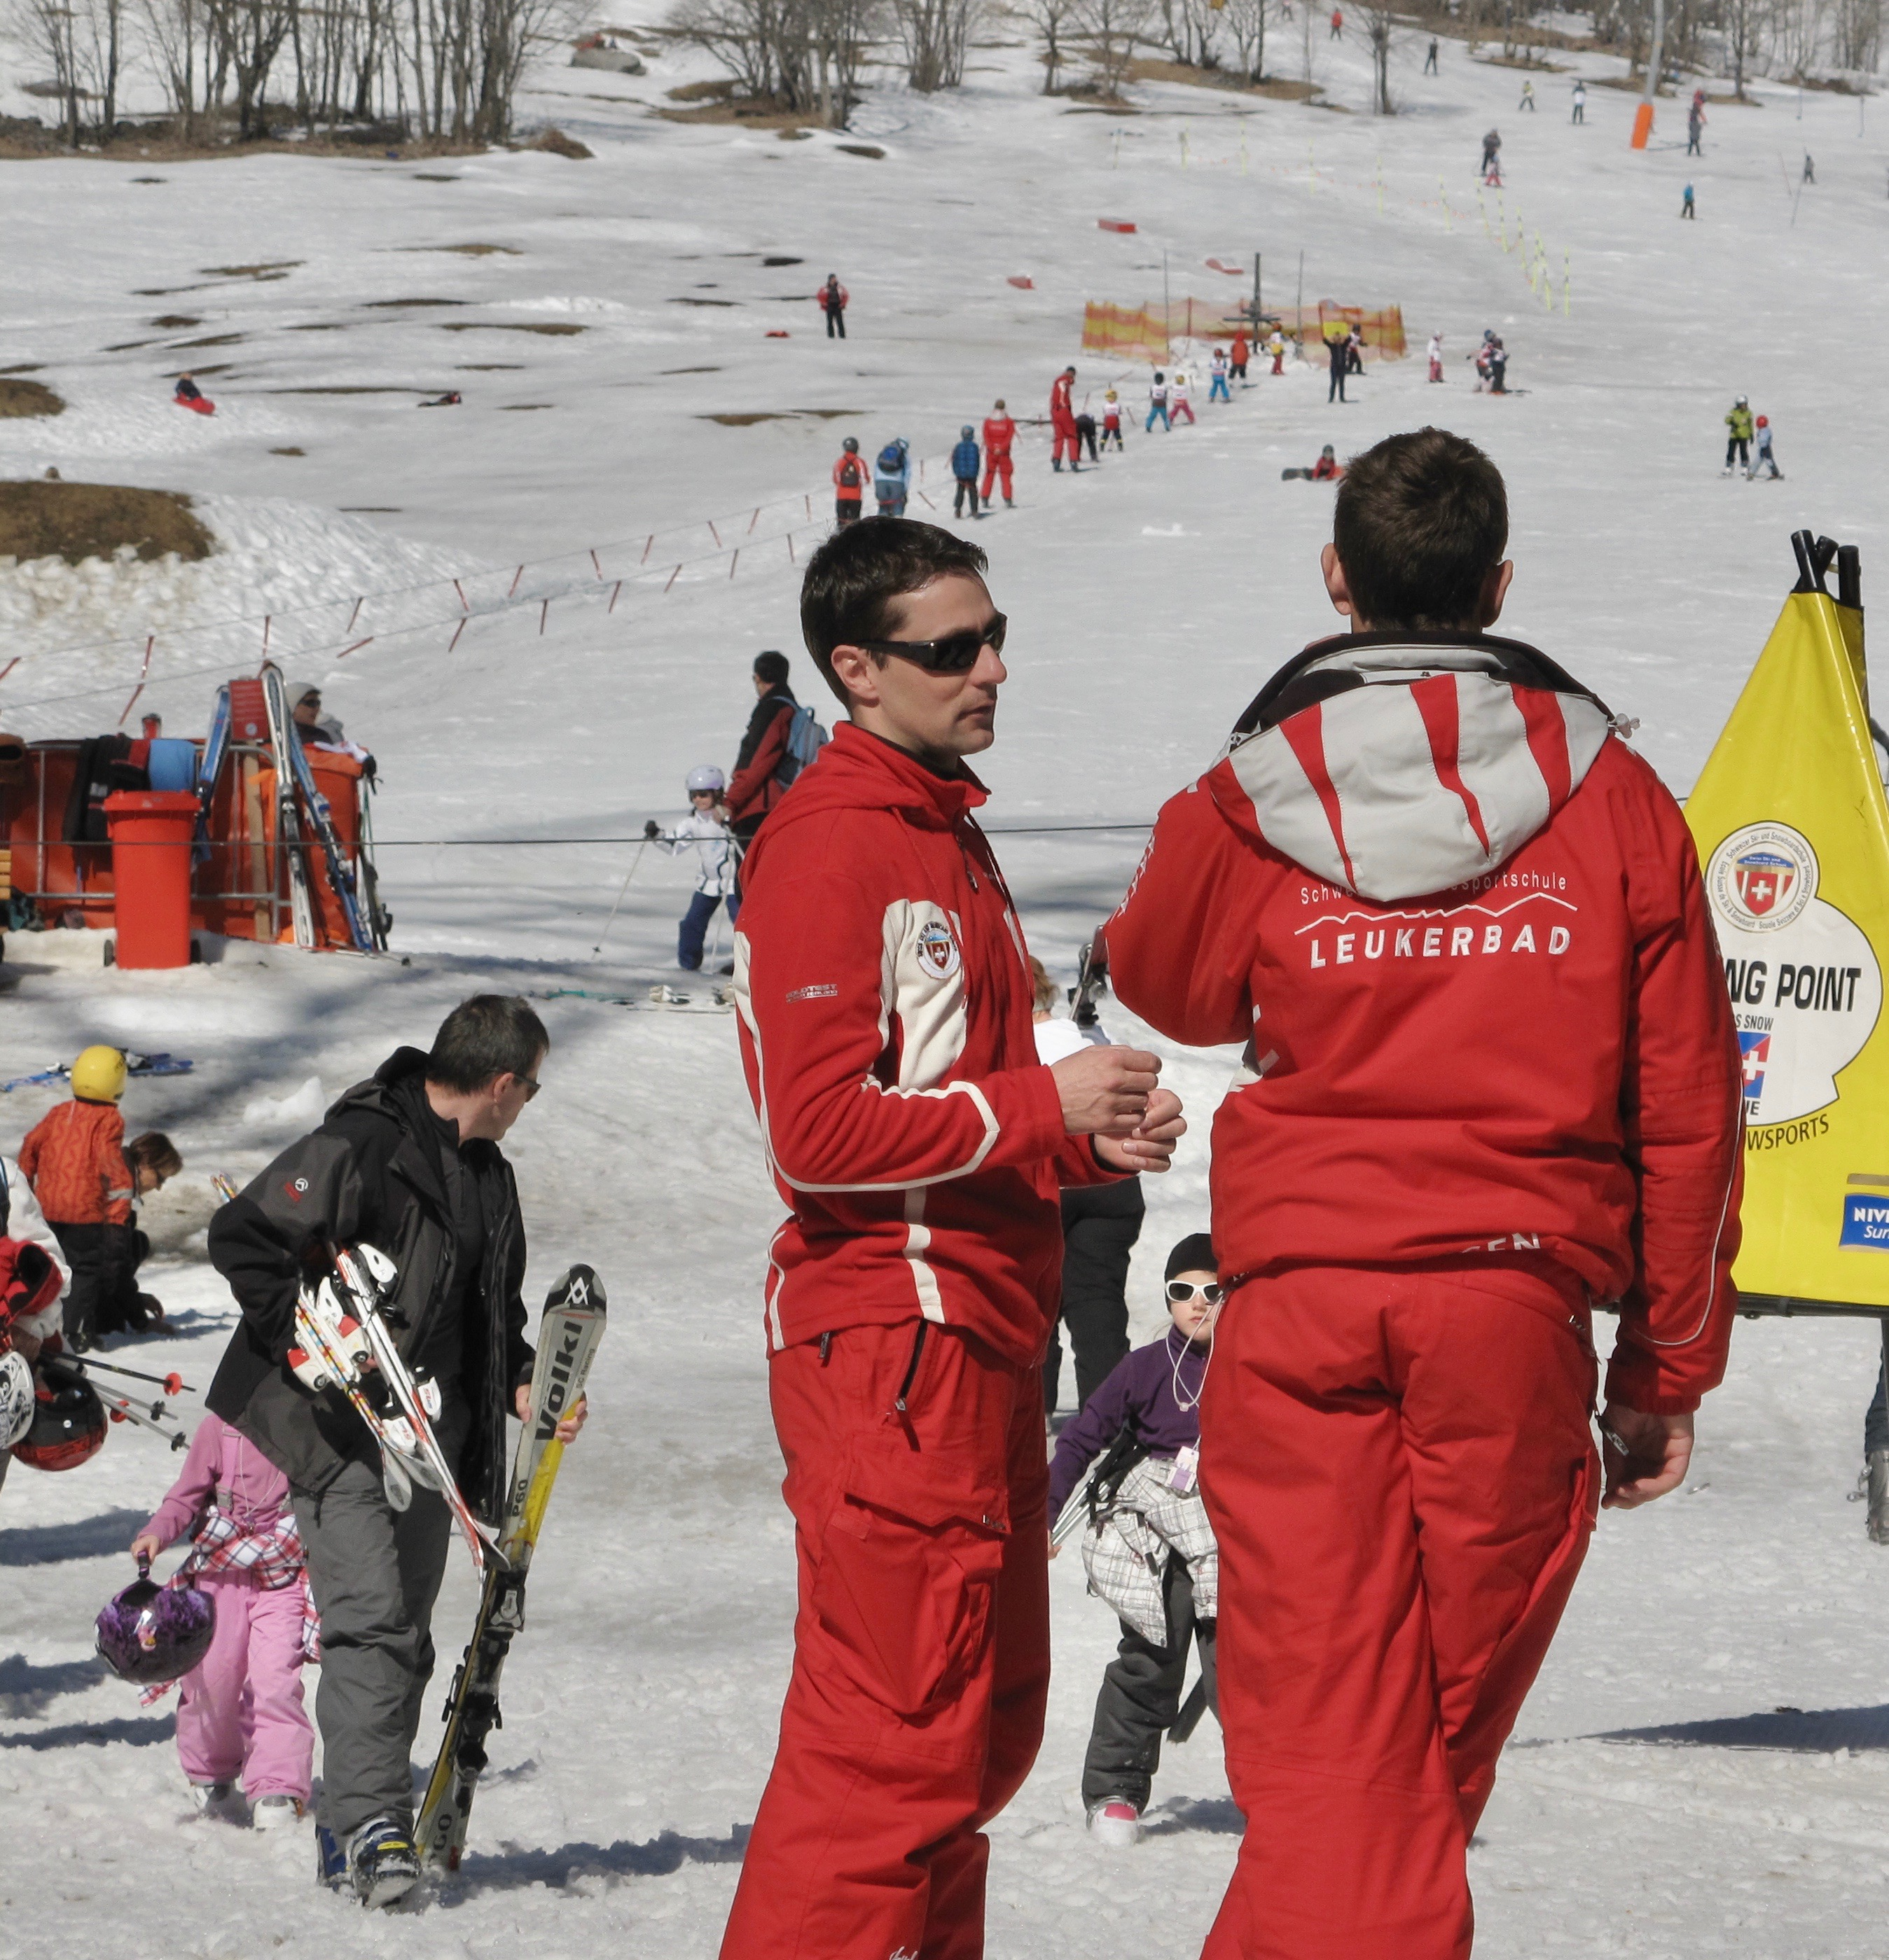 The Erli nursery ski area